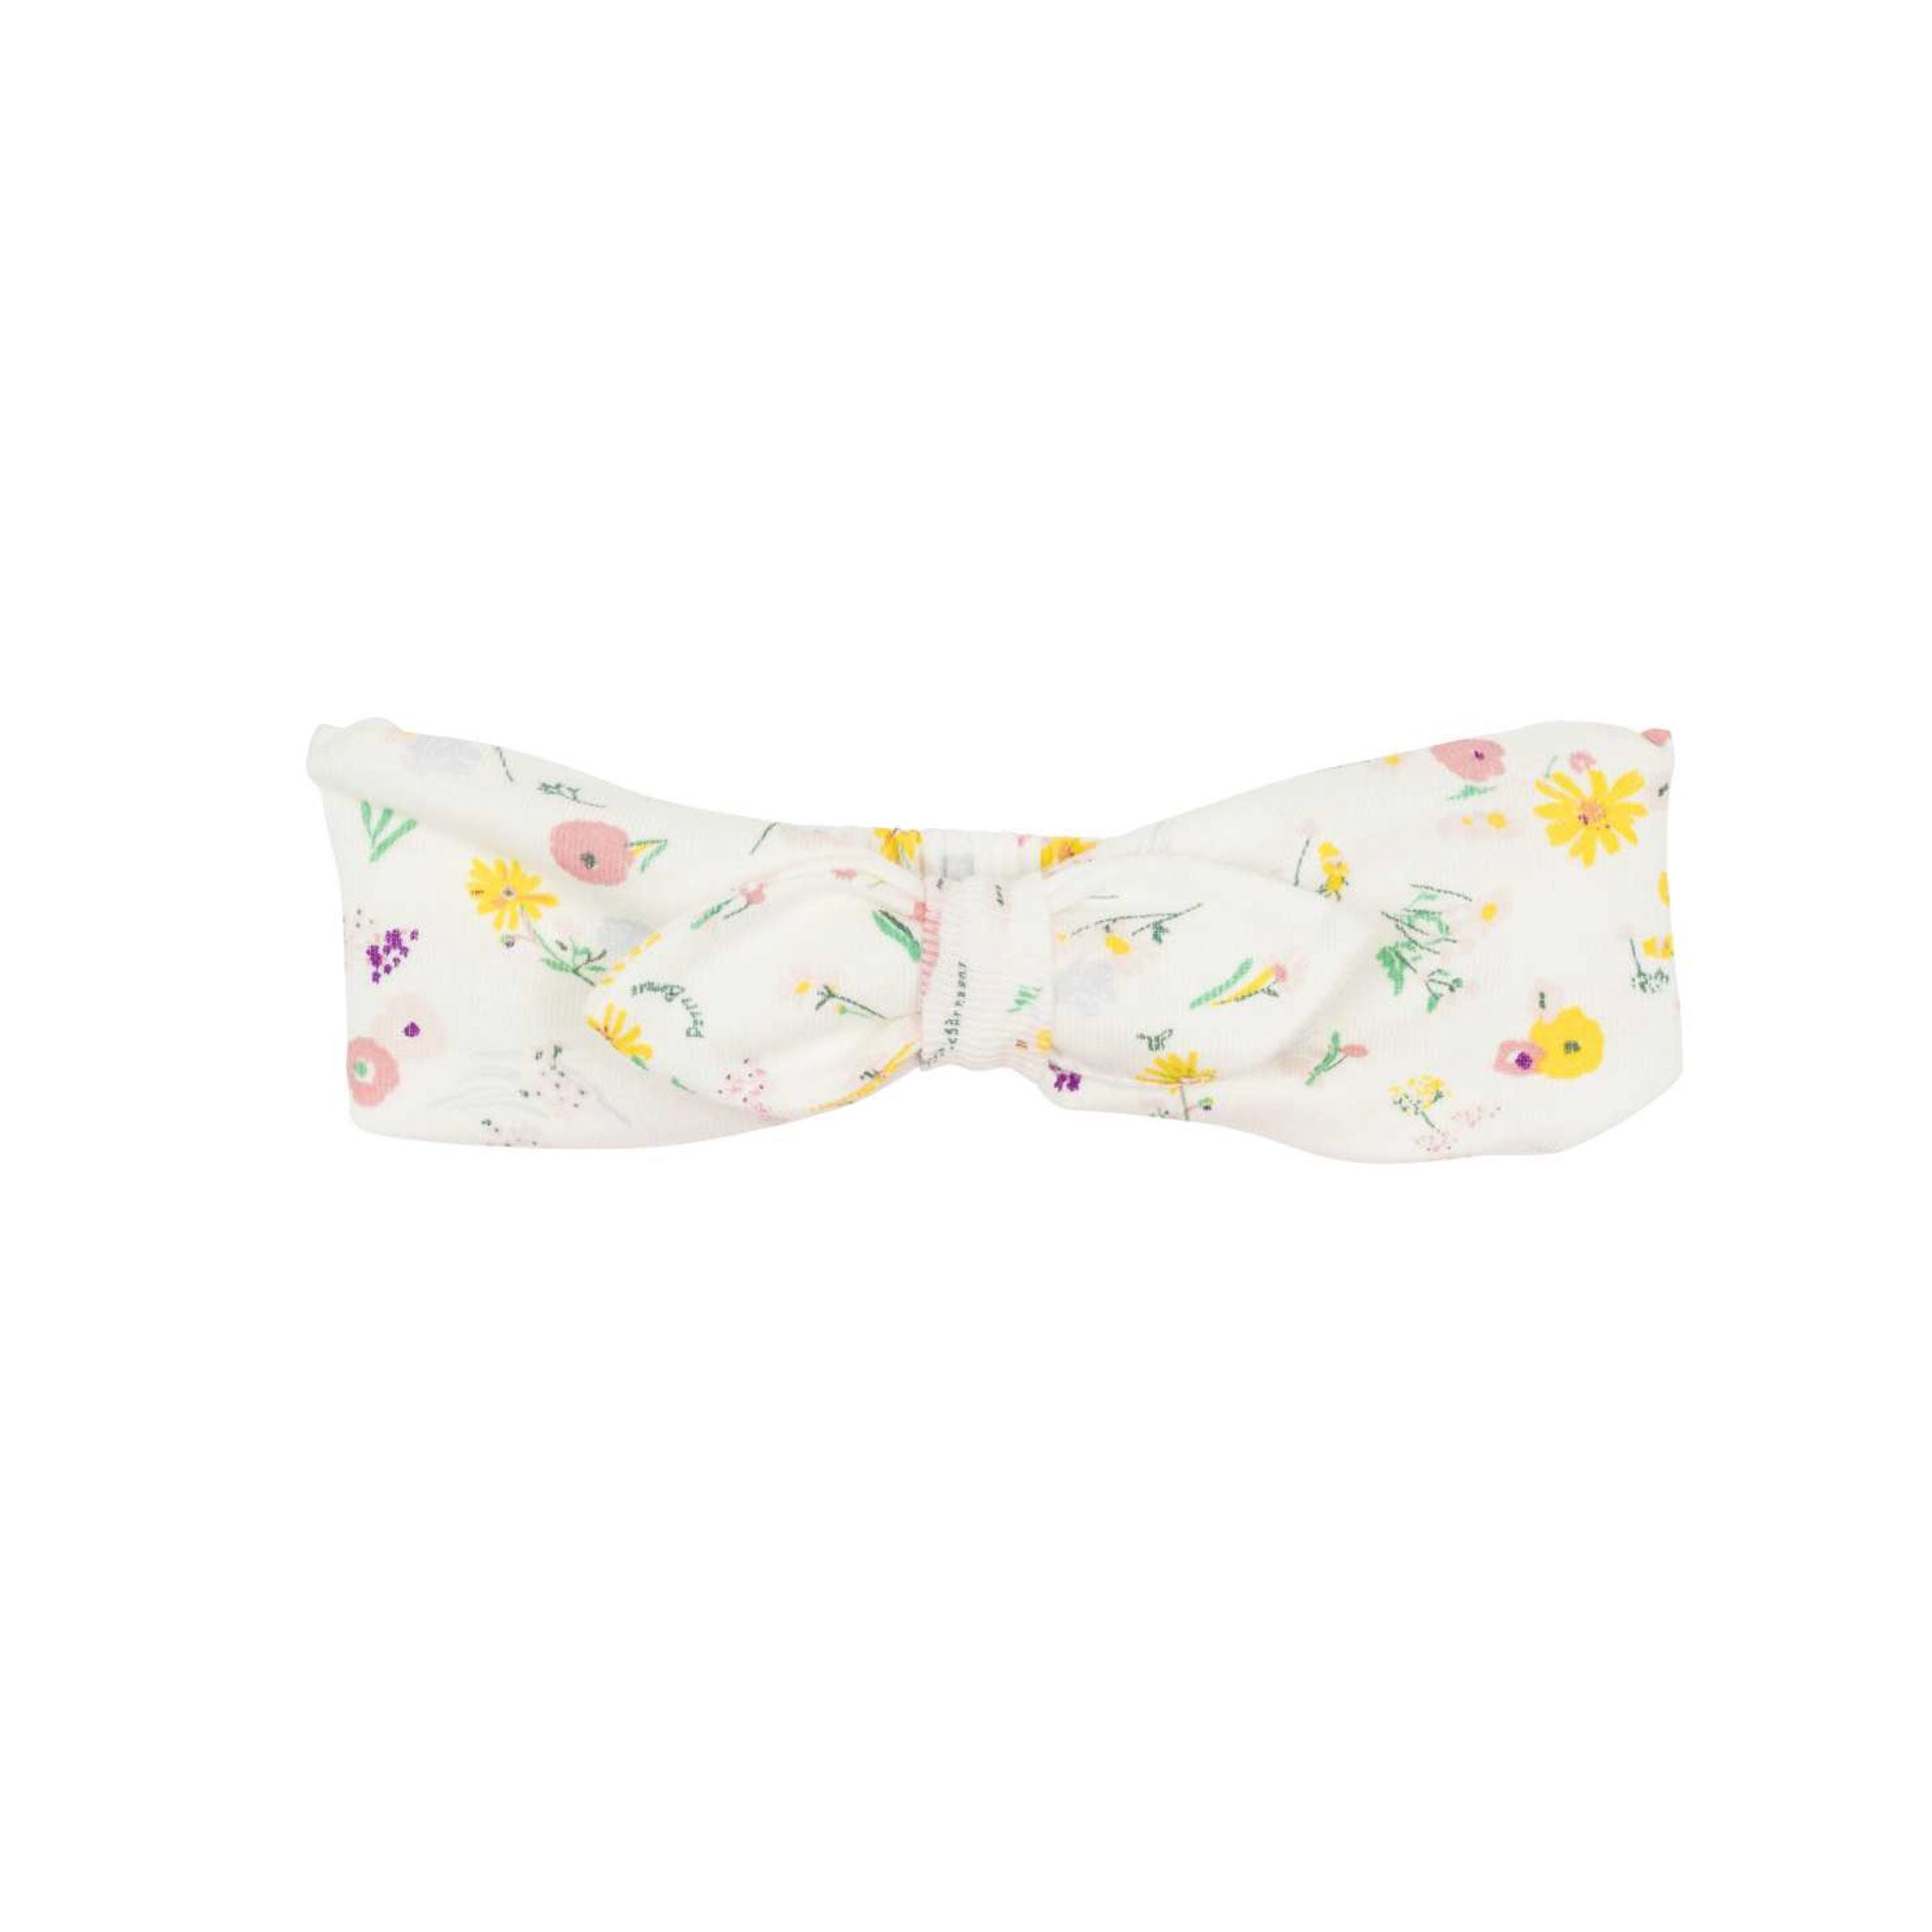 Petit Bateau Baby Headband with flowers at Bonjour Baby Baskets